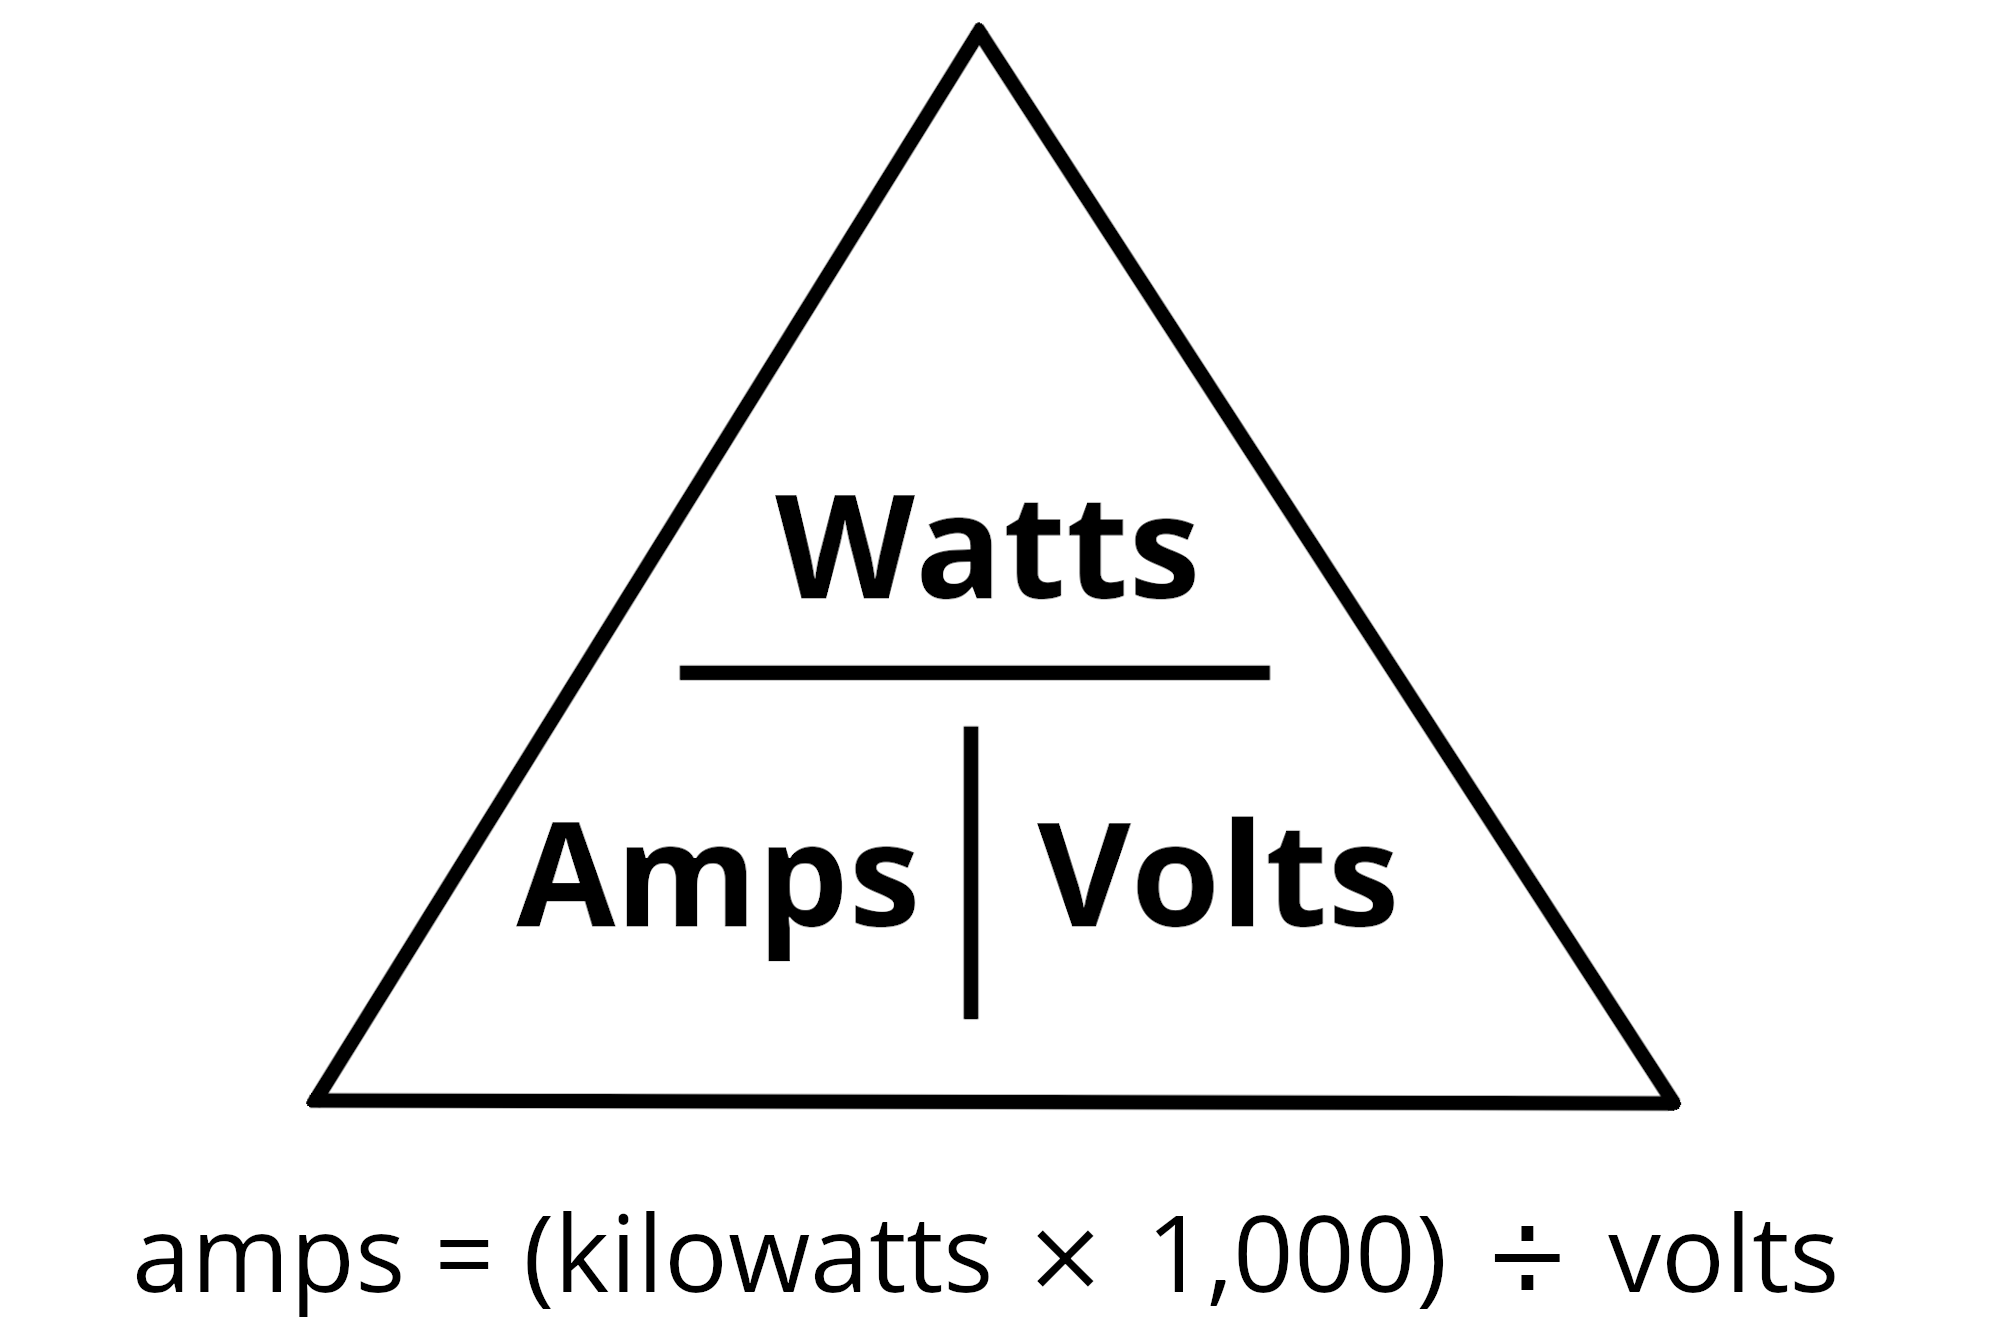 Power triangle illustrating the formula to convert kilowatts to amps with amps being equal to kilowatts times 1,000 divided by volts